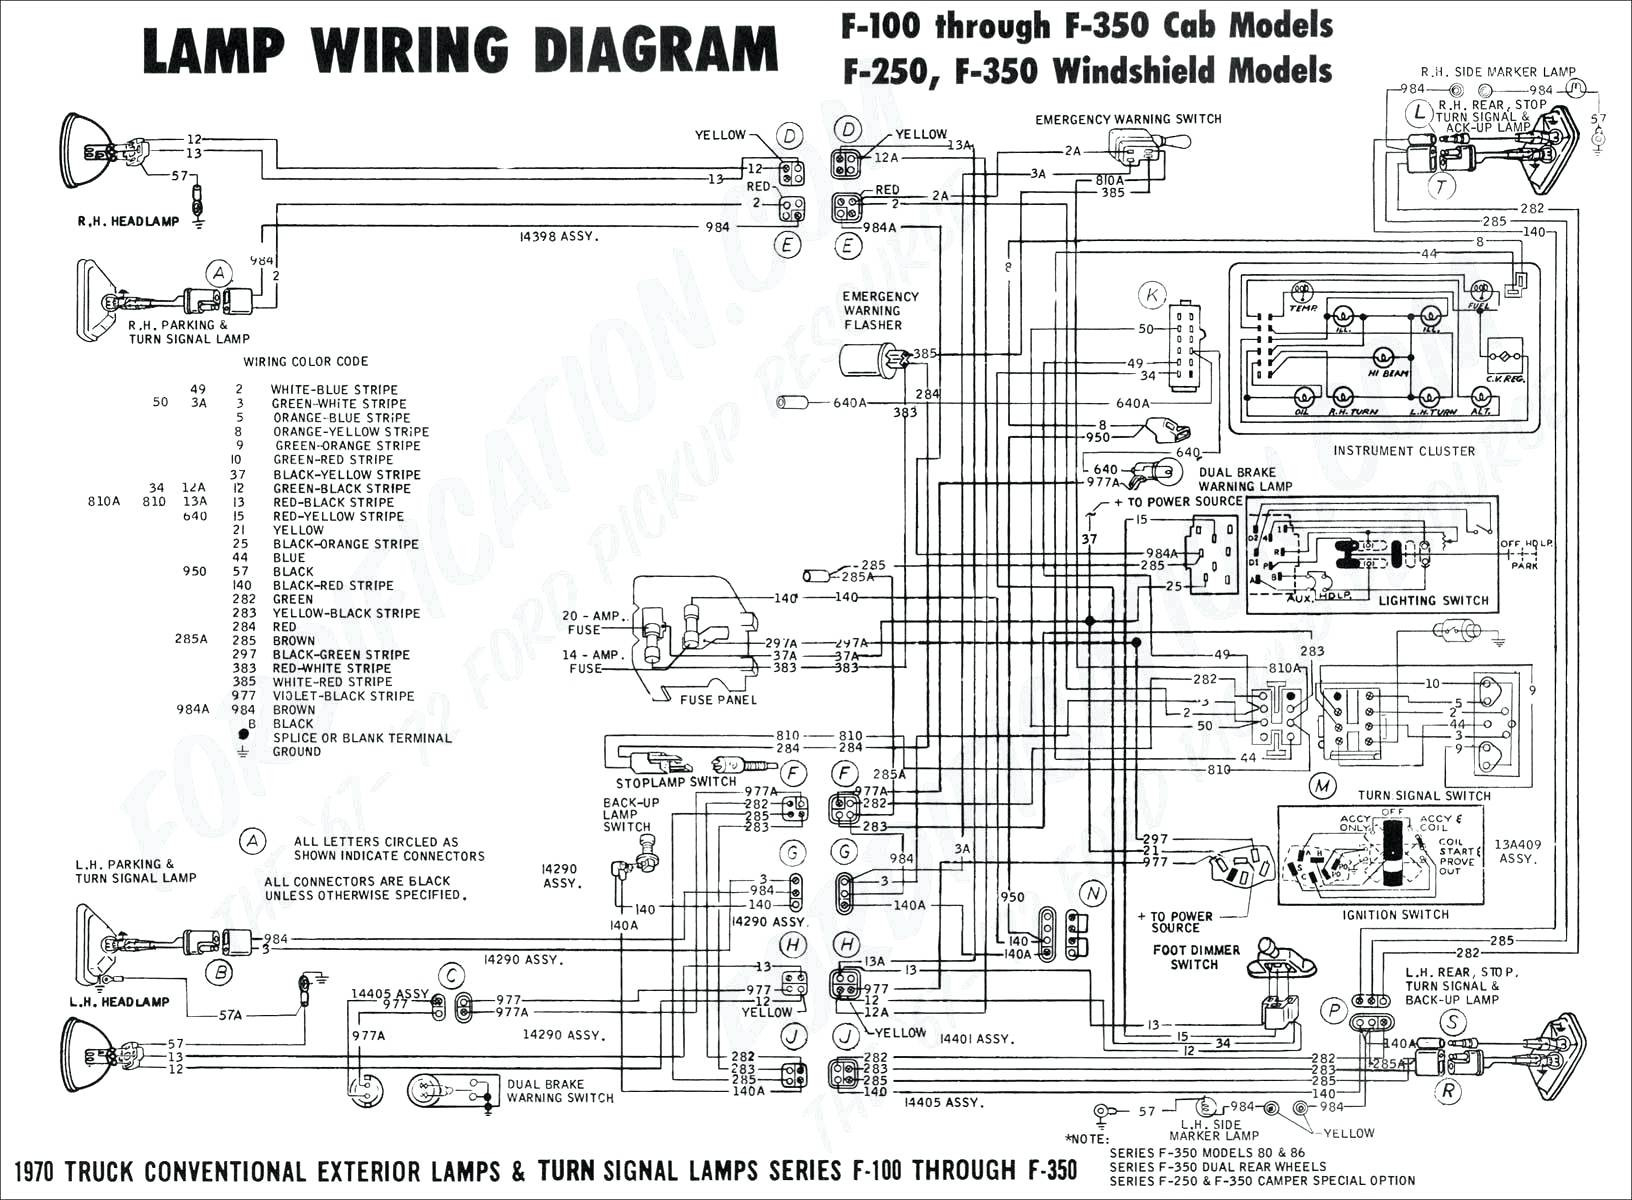 diagram] 2004 ford ranger cbc fuse diagram full version hd quality fuse  diagram - fuseboxdiagrams.firenzefiesolemusei.it  diagram database - firenzefiesolemusei.it